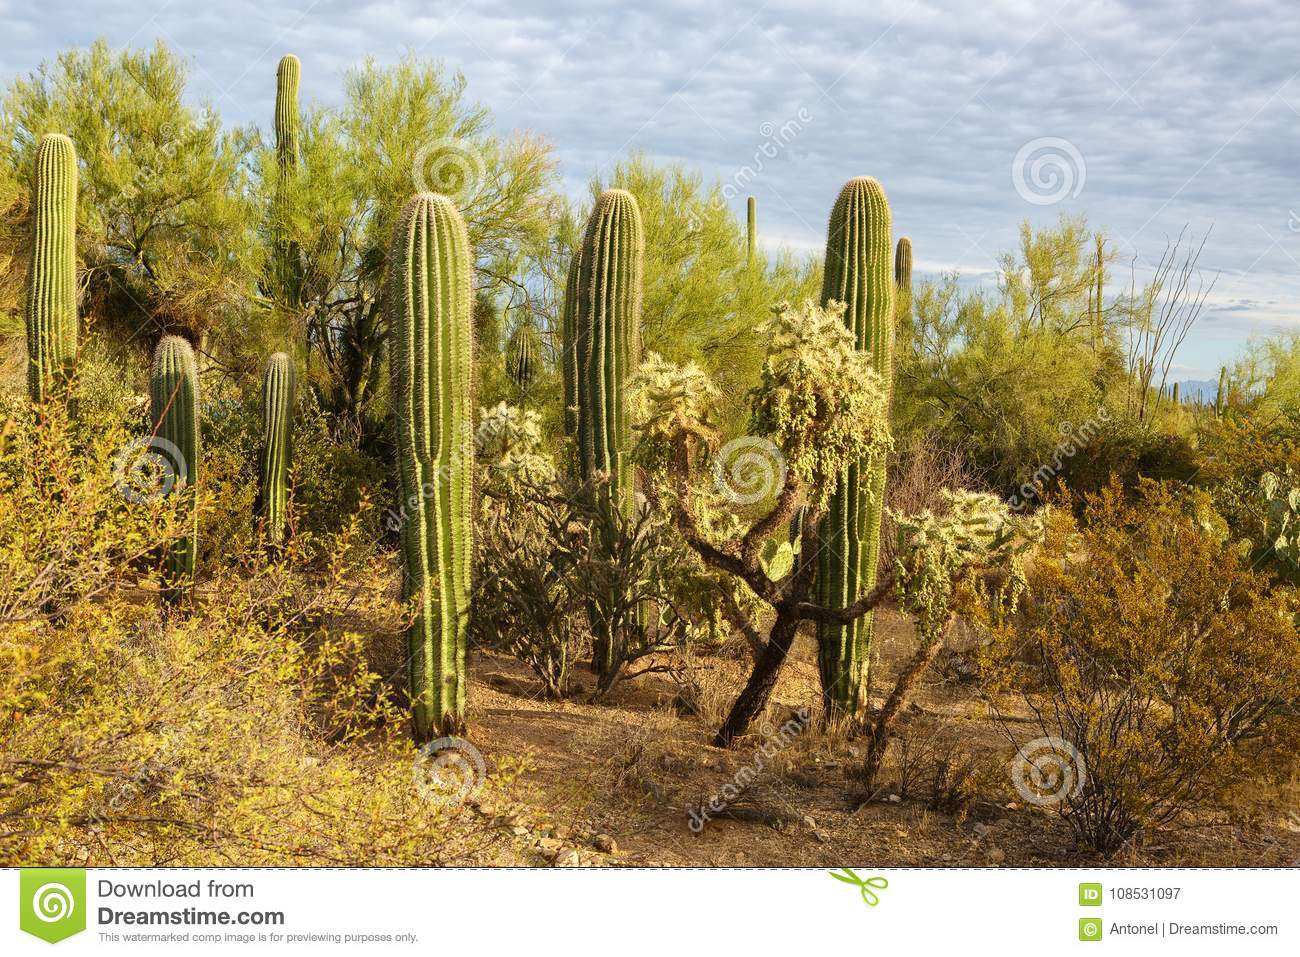 Cactus thickets in Saguaro National Park at sunset, southeastern Arizona, United States